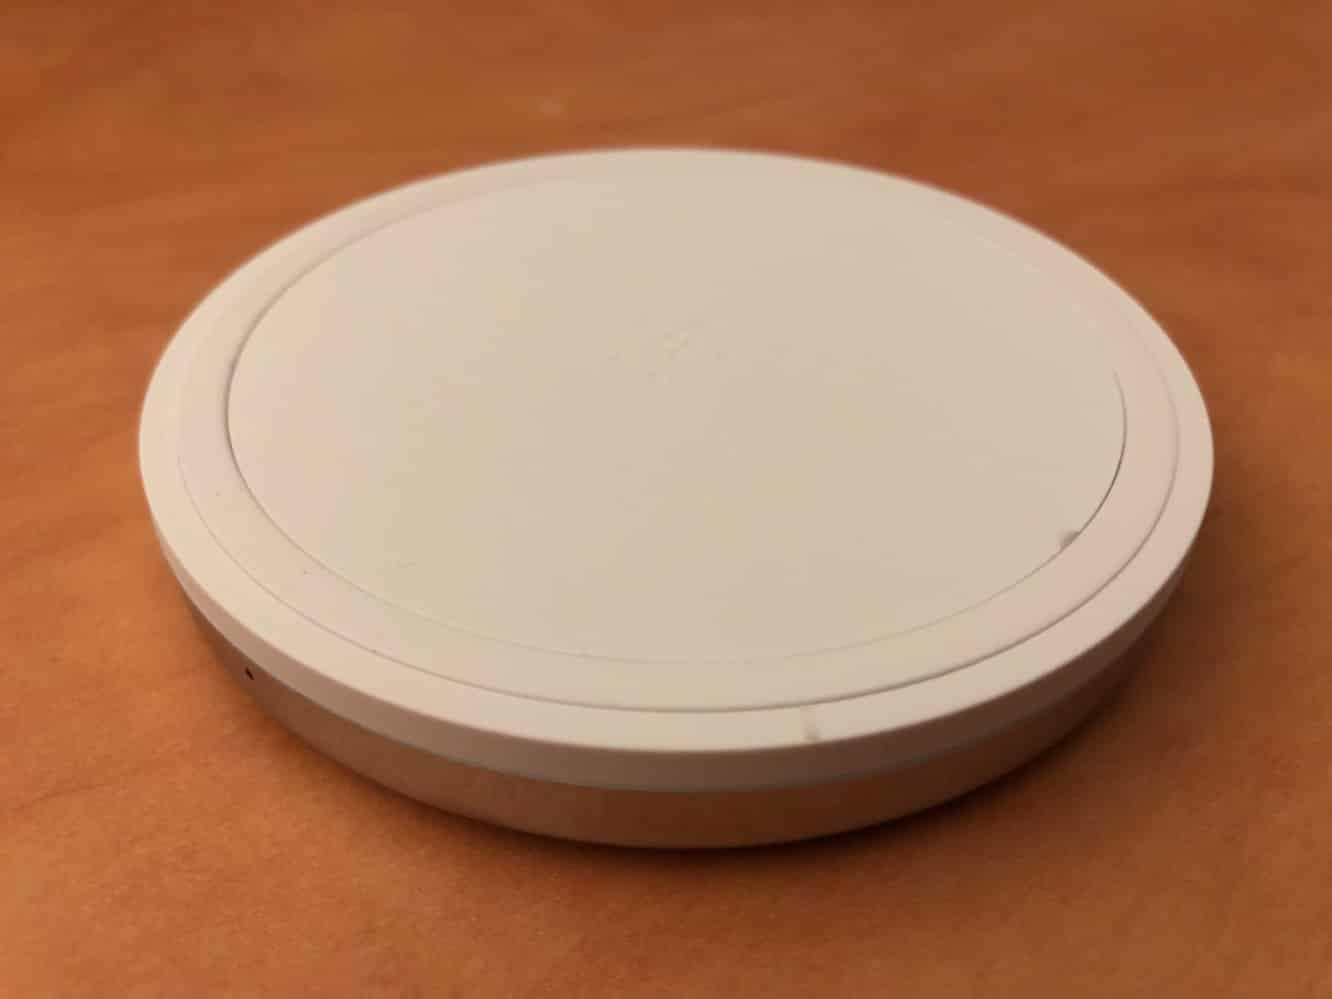 Review: Belkin Boost Up Special Edition Wireless Charging Pad